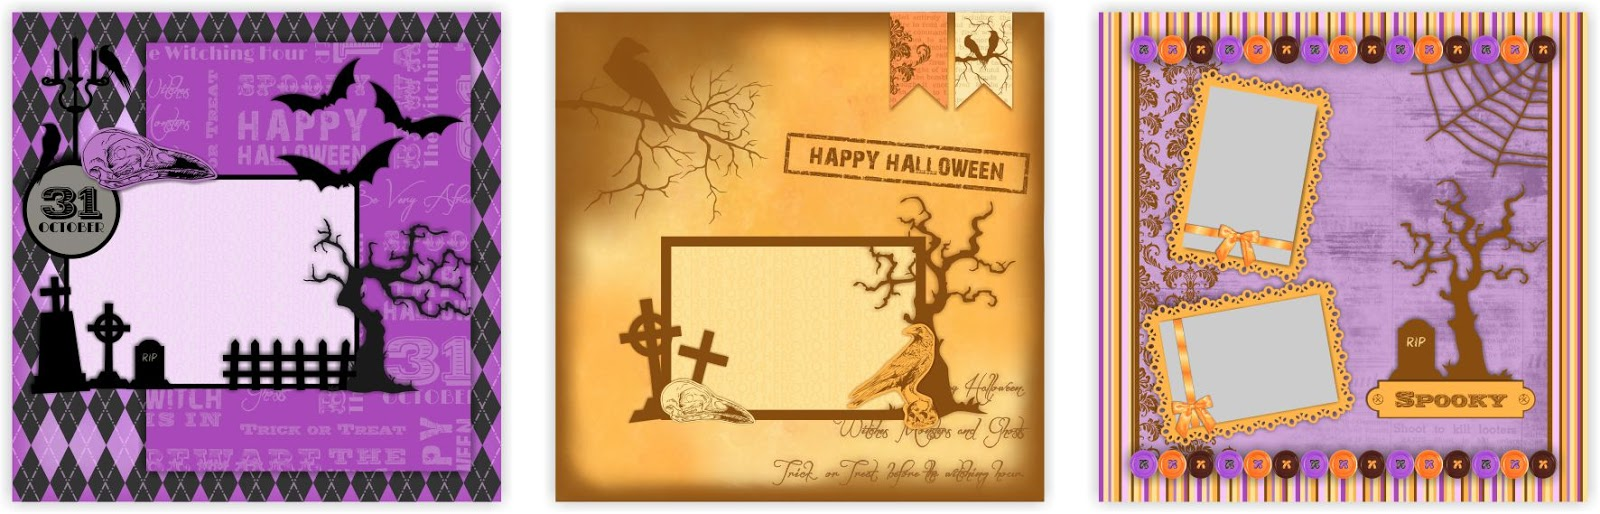 Scrapbook ideas and designs - Above Are A Three Ideas Using My New Spooky Digital Set Available At My Etsy Shop The Set Has 12 Digital Scrapbook Pages Which Are 12 X12 And Saved As